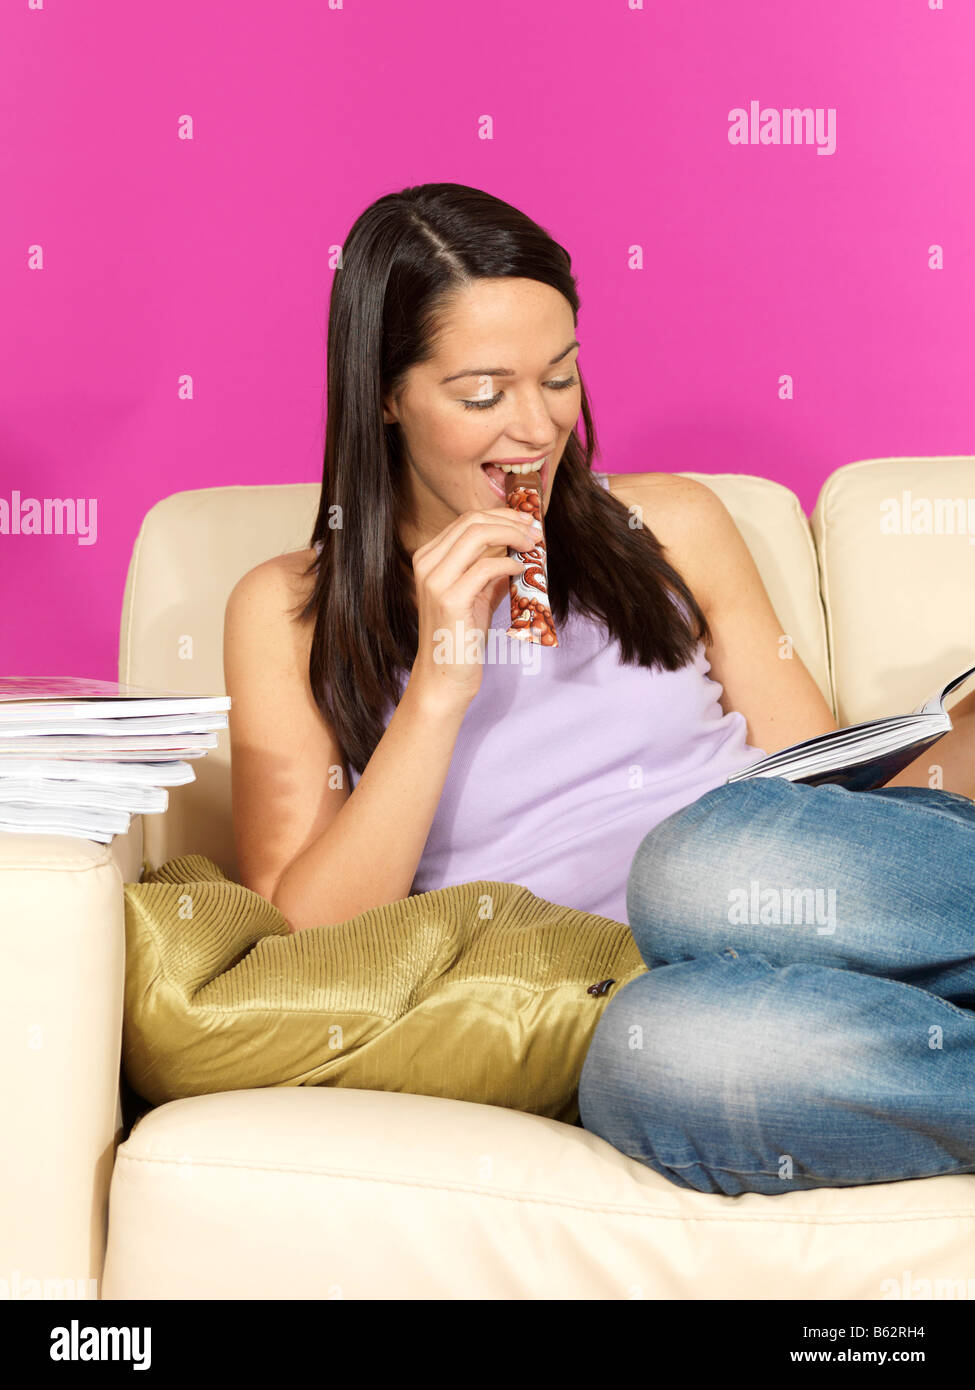 Young Woman Reading a Magazine Eating Chocolate Model Released ...